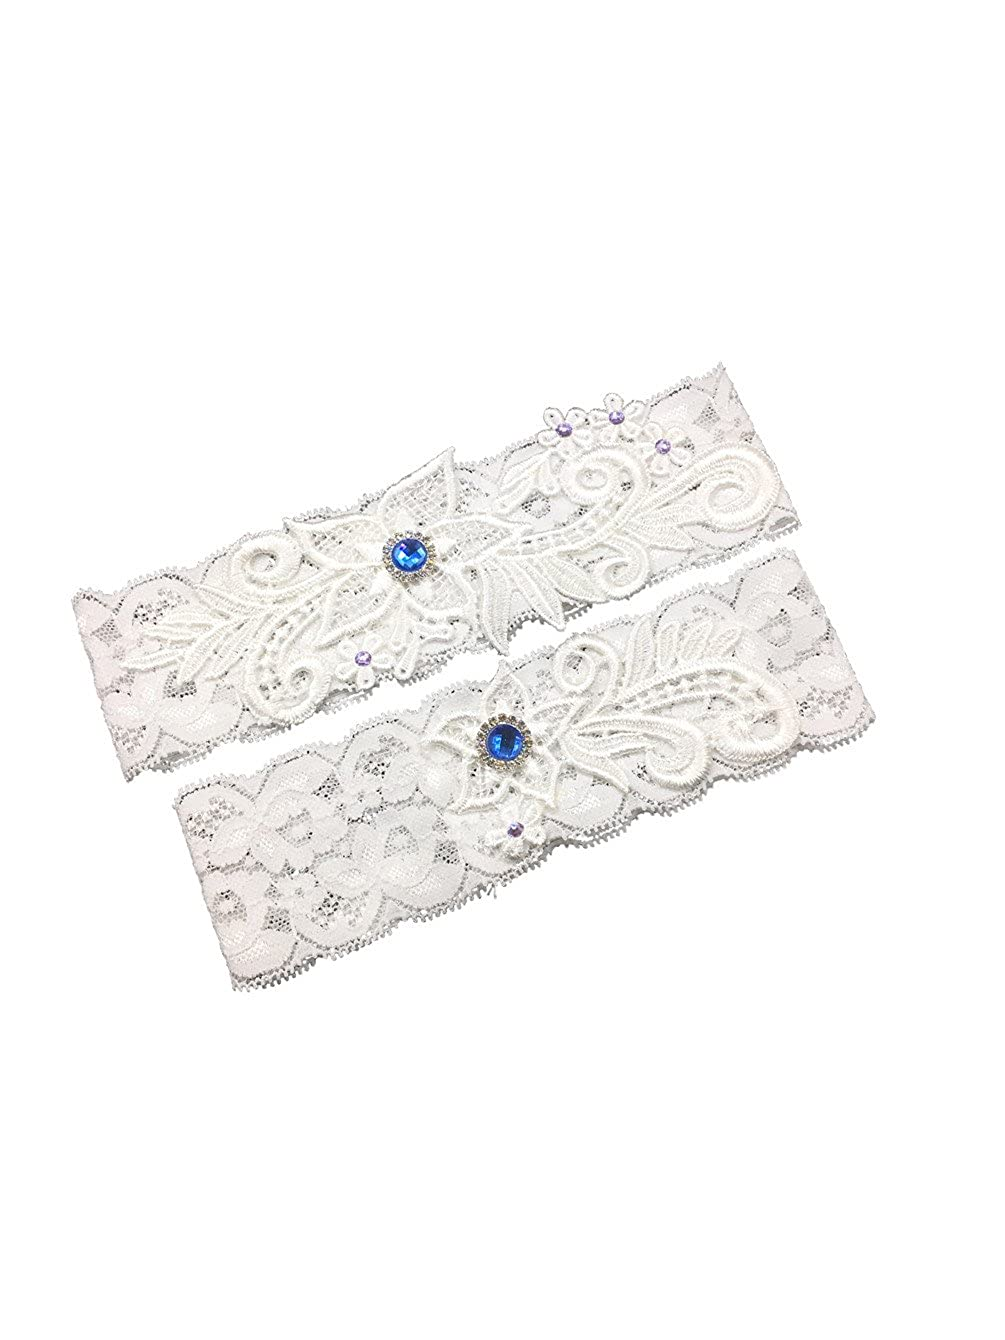 Unibuy Wedding Lace Garter Set With Blink Rhinestone Add Navy Blue Pearl(Pretty Box something Blue)